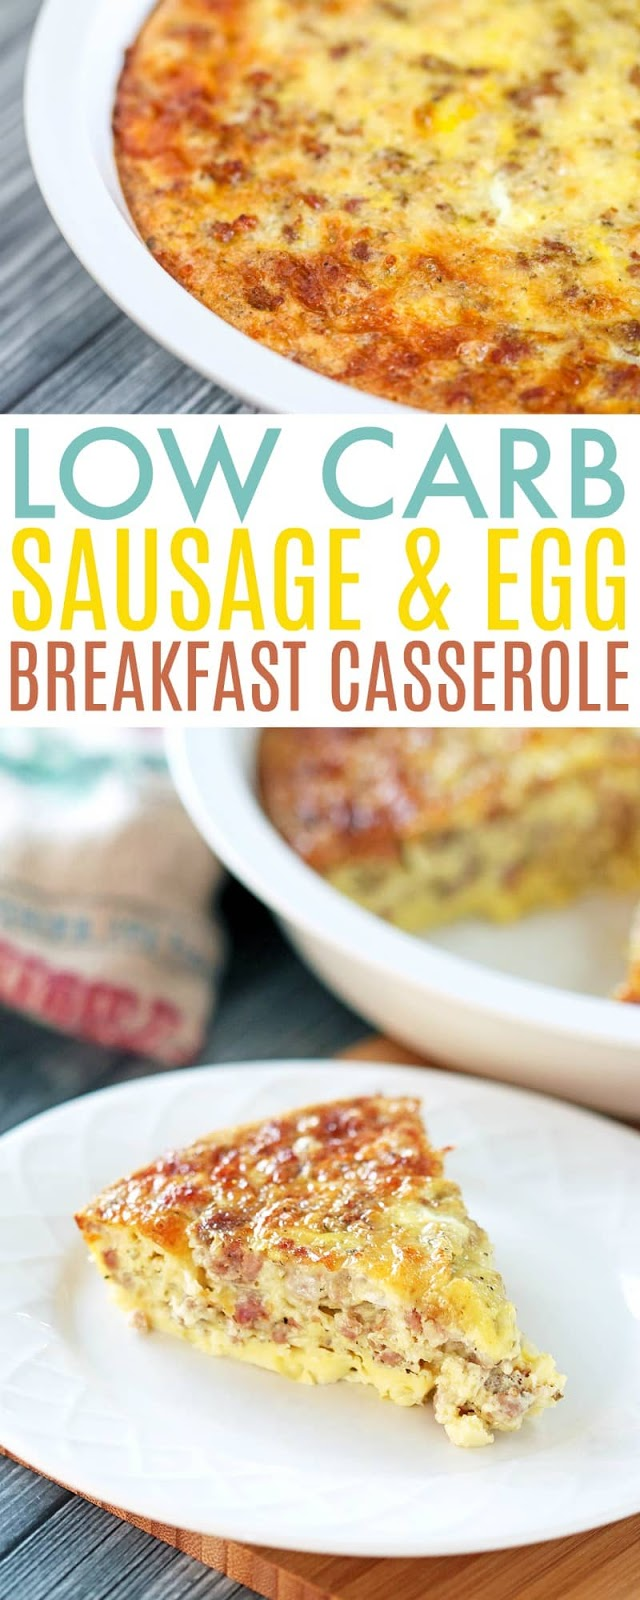 LOW CARB SAUSAGE AND EGG